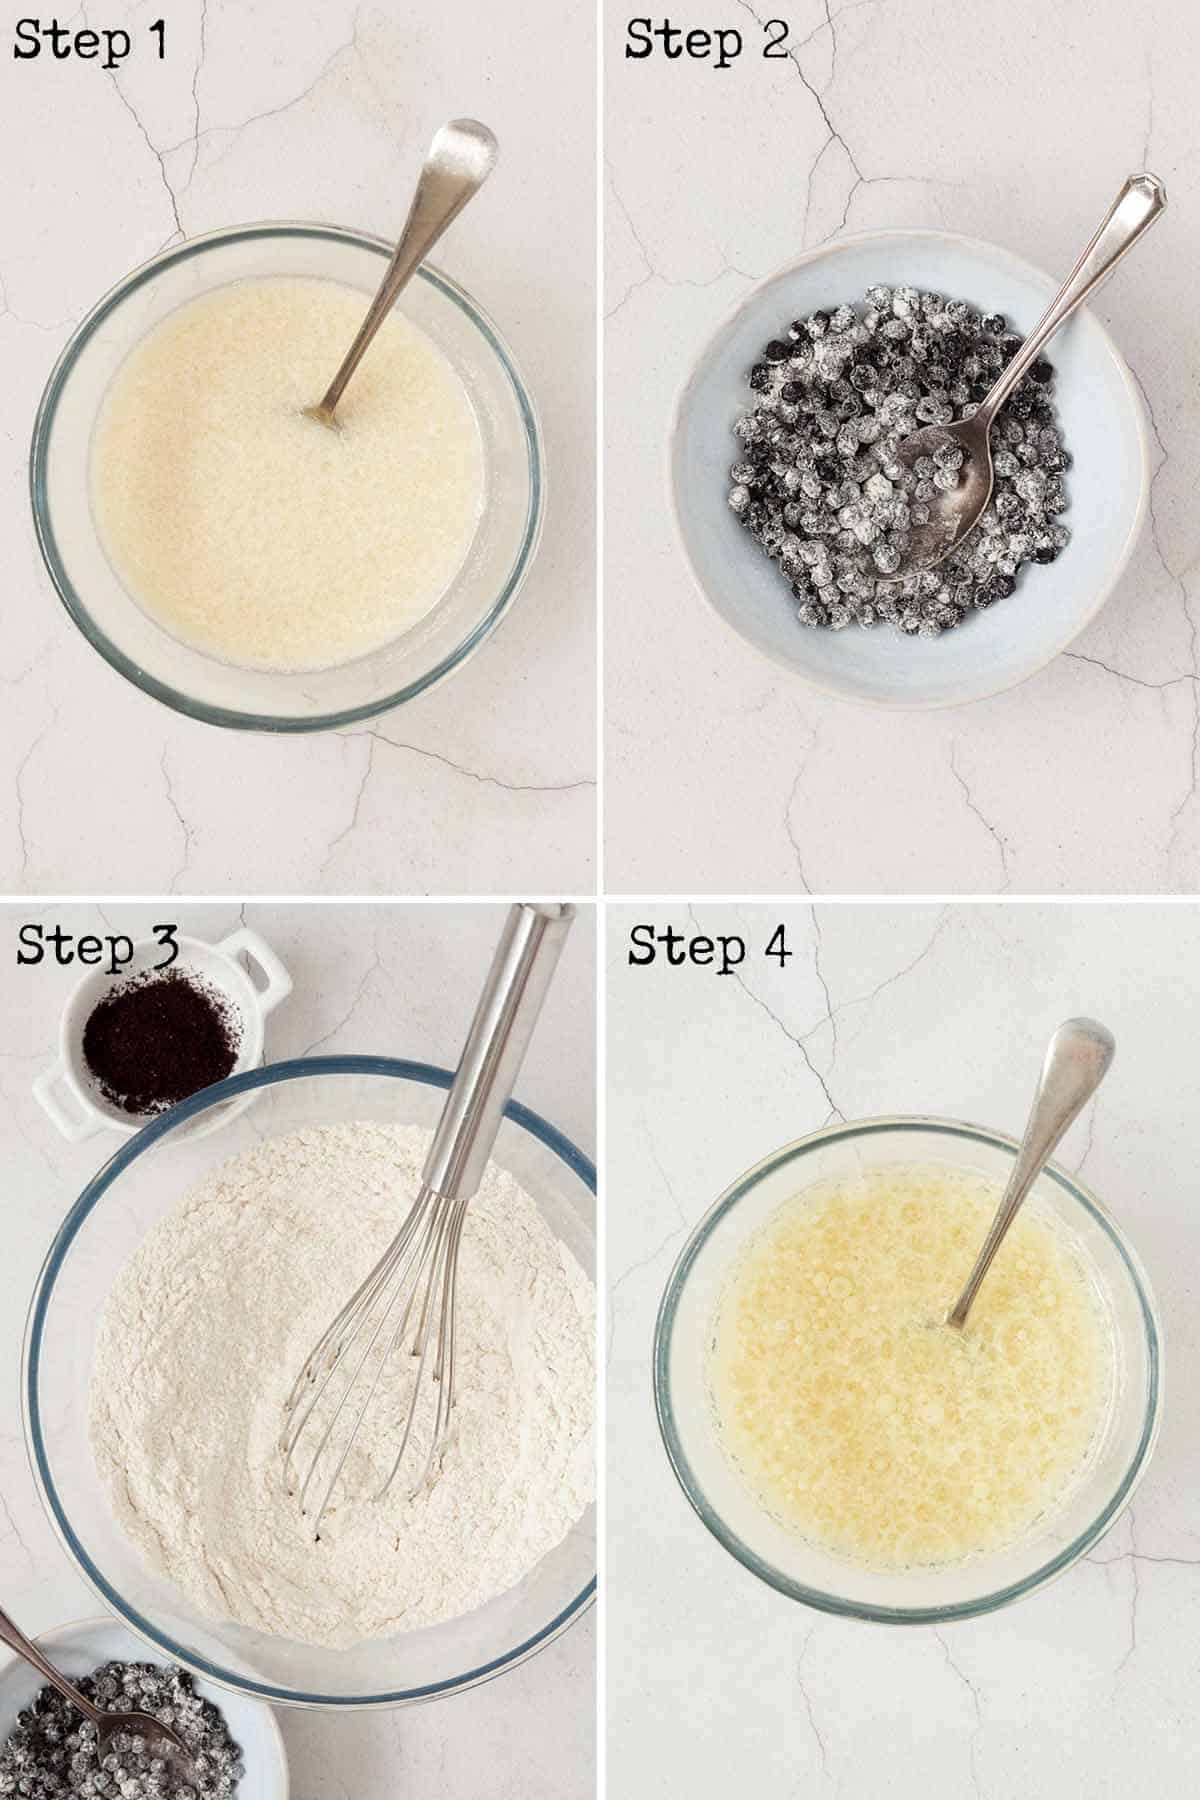 Collage of images showing vegan buttermilk, dried berries and flour in a bowl